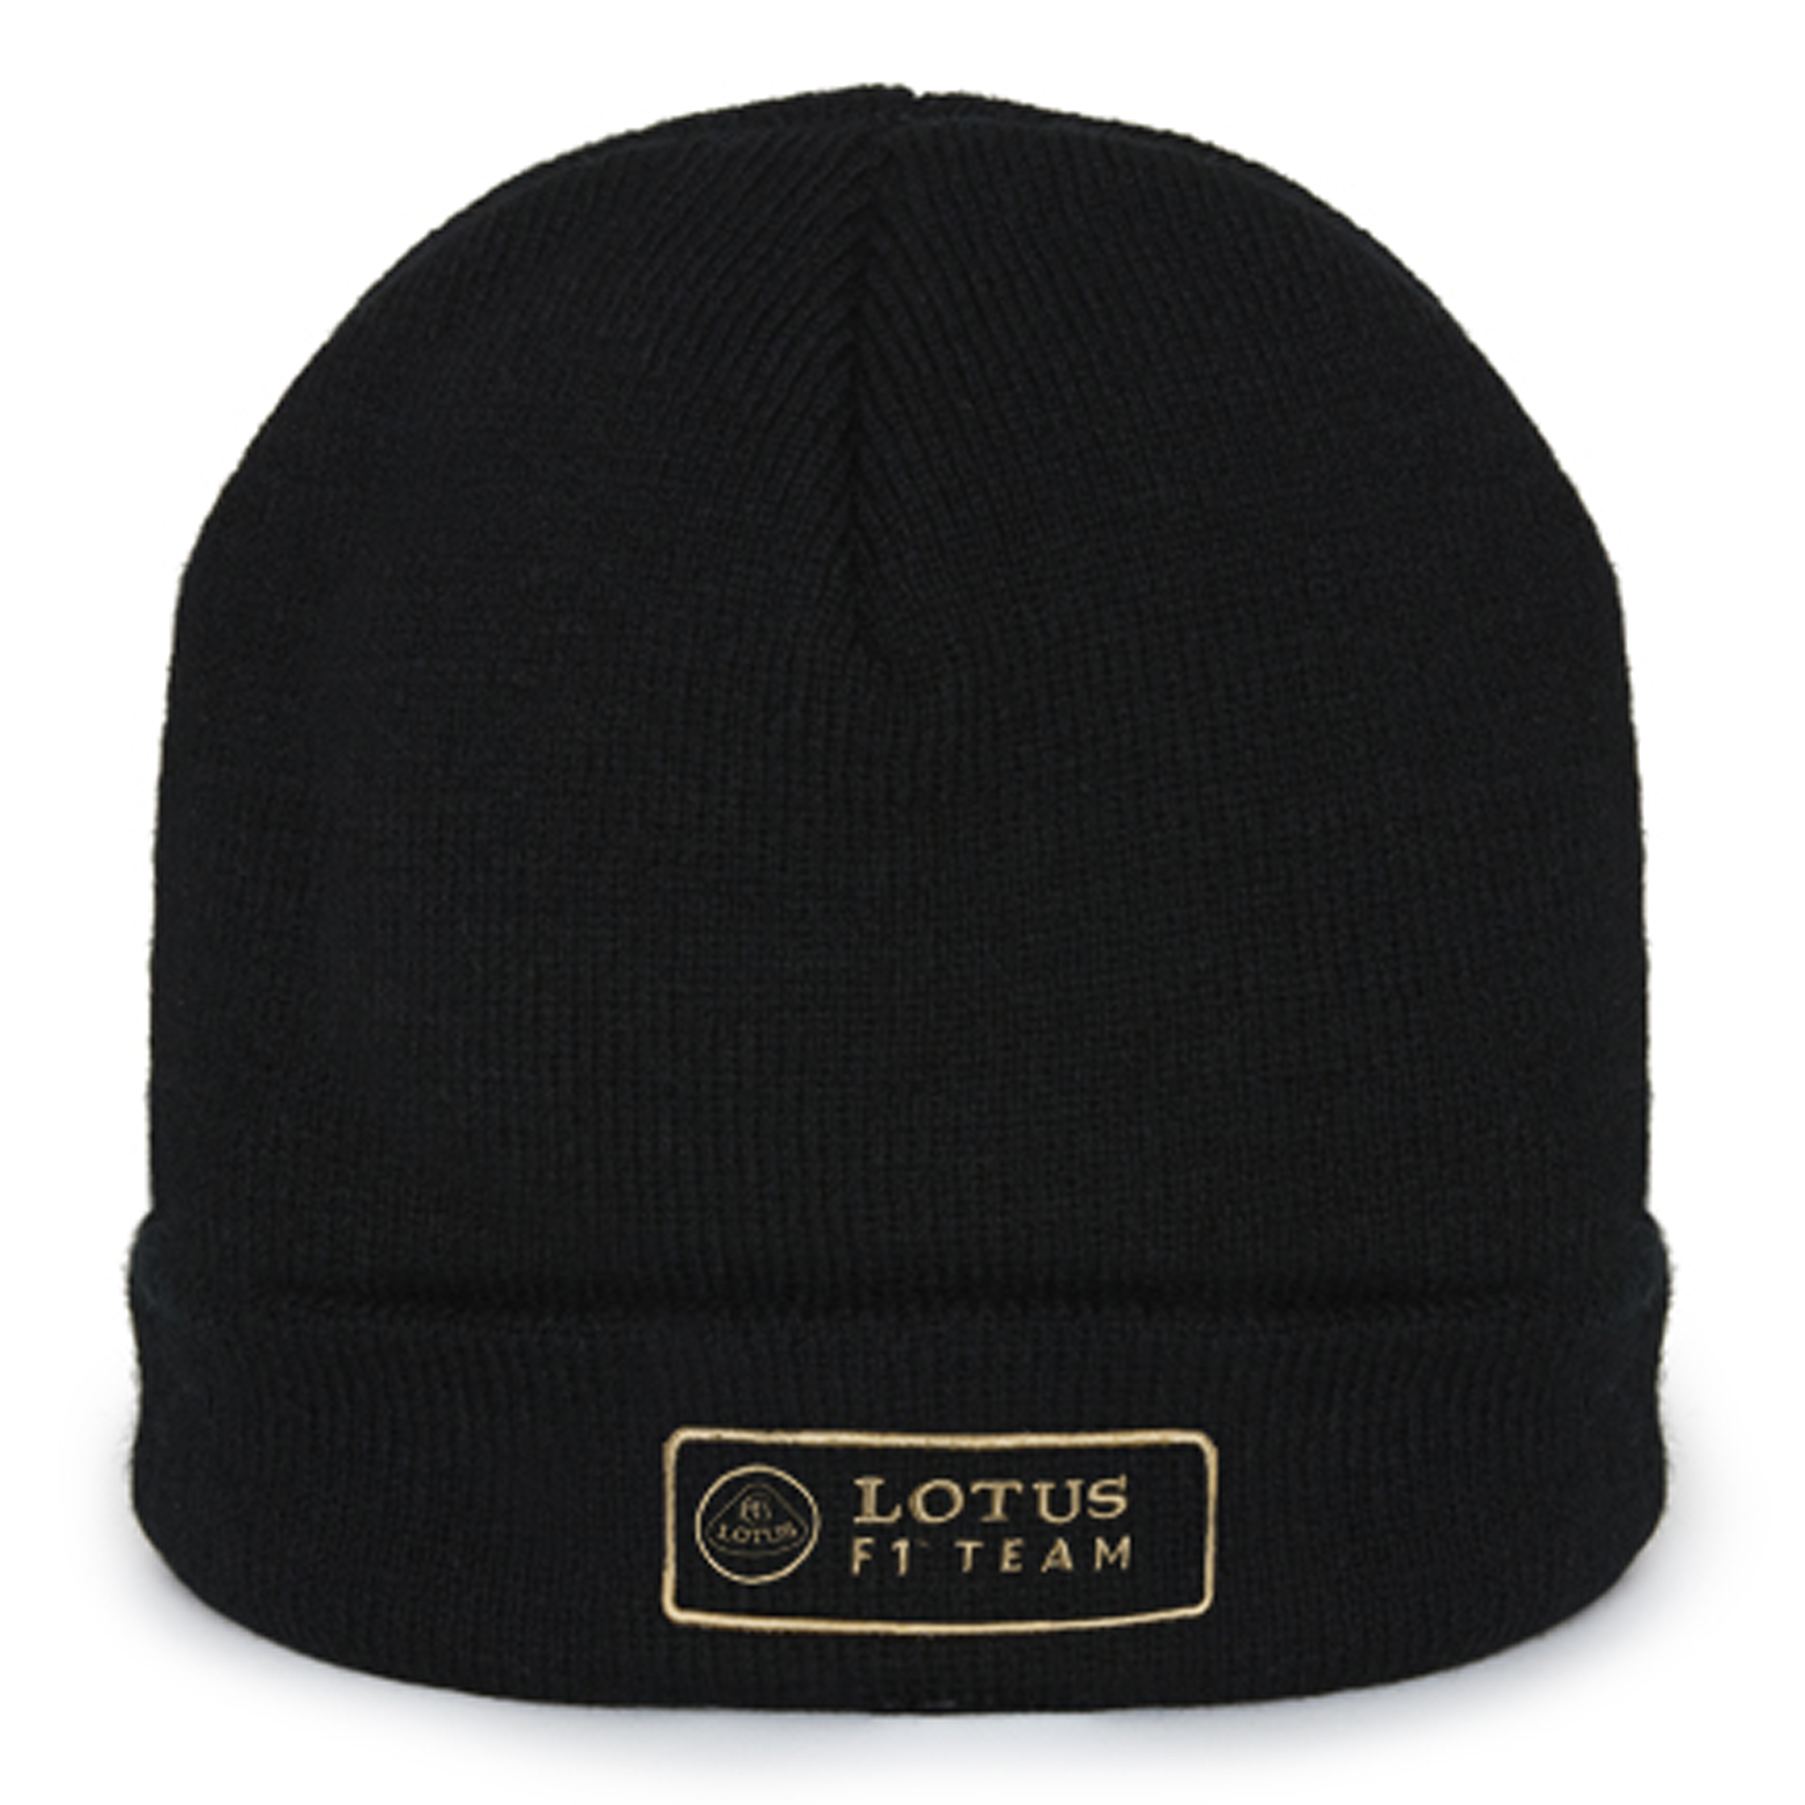 Lotus F1 Team 2013 F1 Replica Beanie